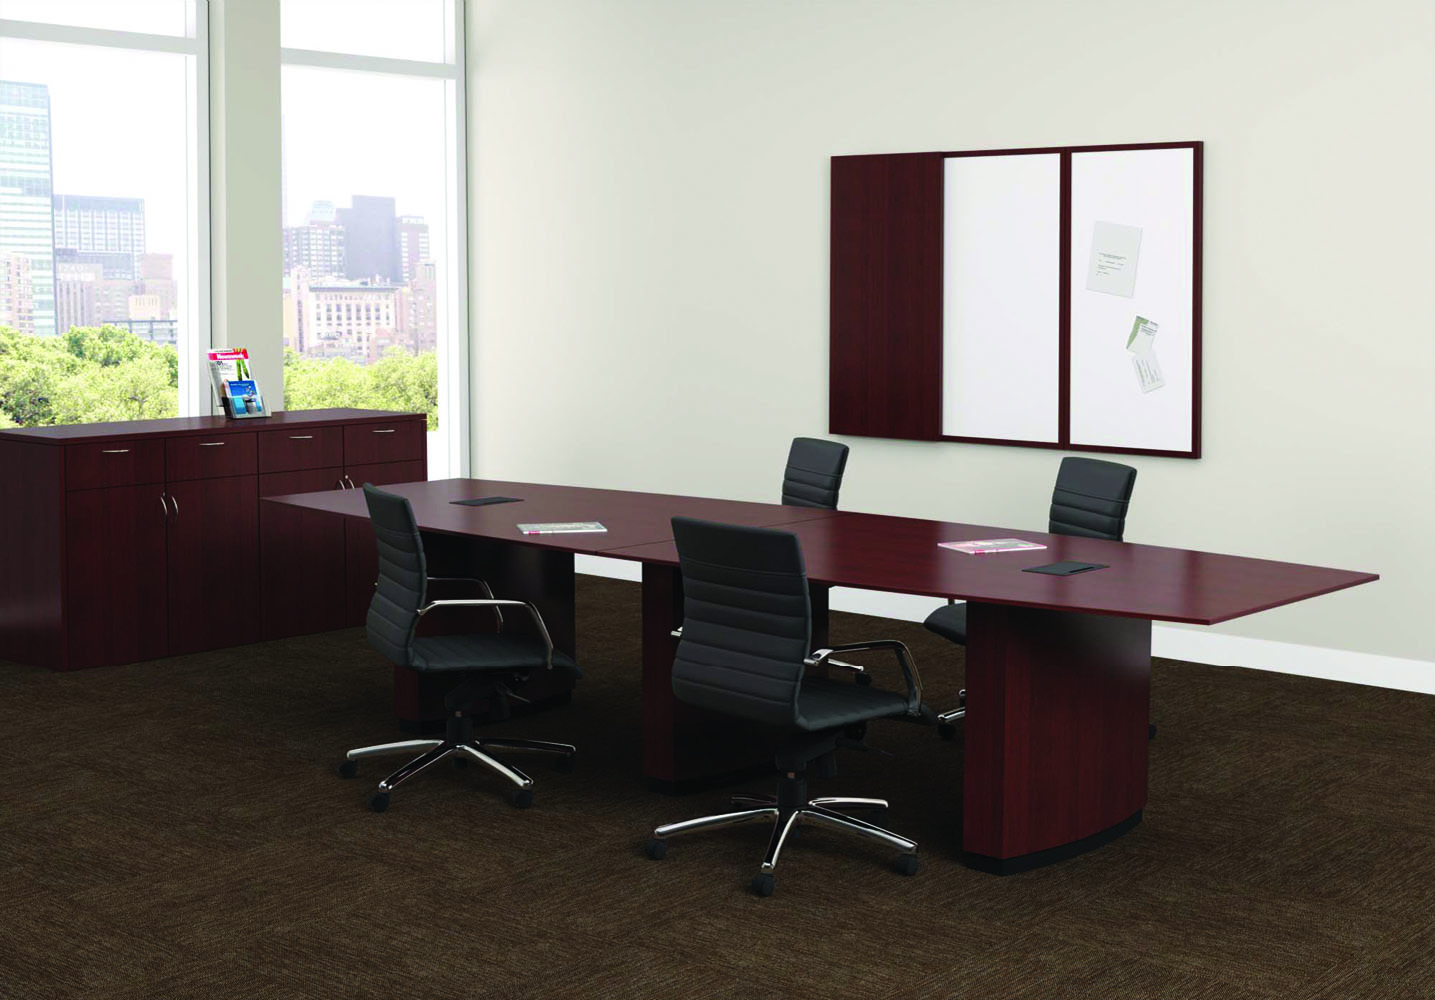 Office Table And Chair Set - Collaboration Spaces Office Furniture Sets